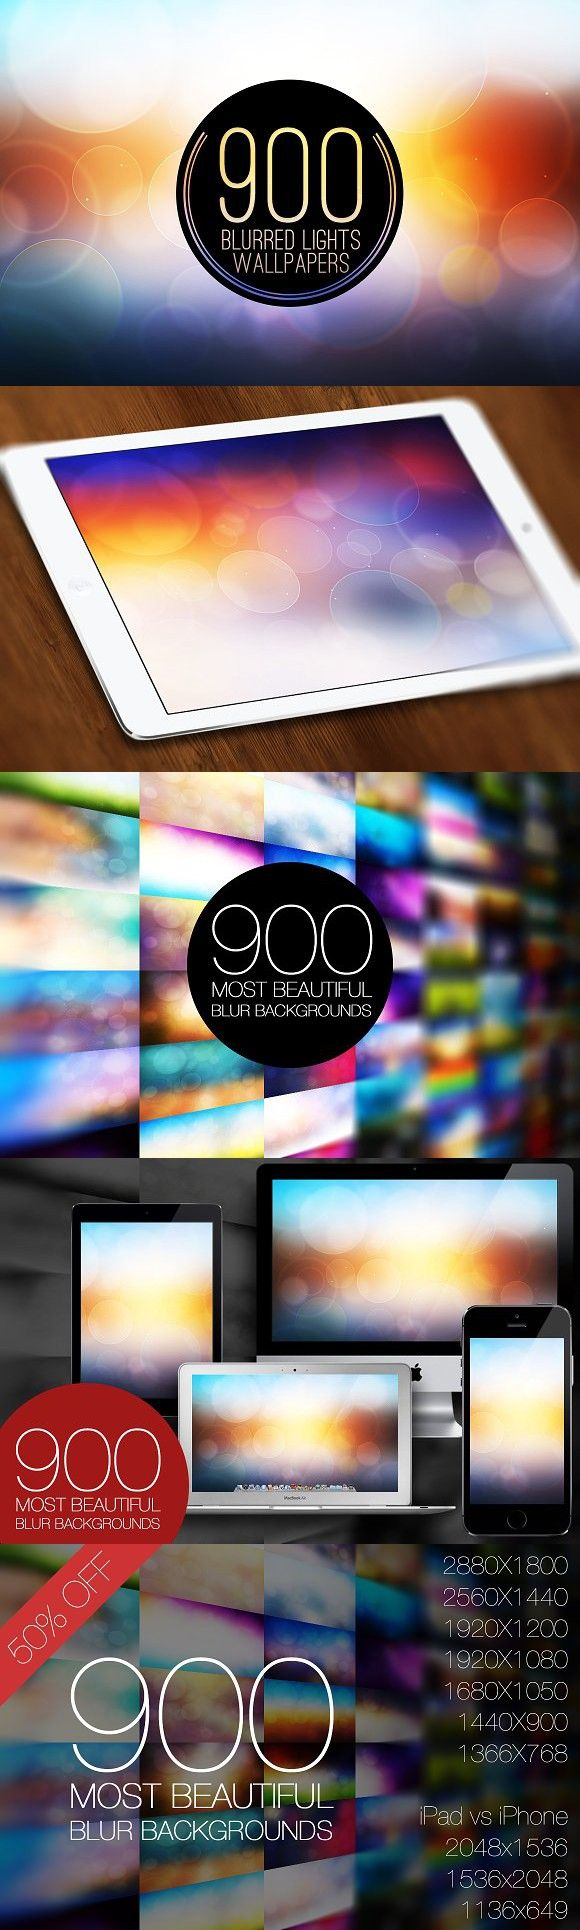 900 Blur Wallpapers (Blurred Lights) #blurredlights